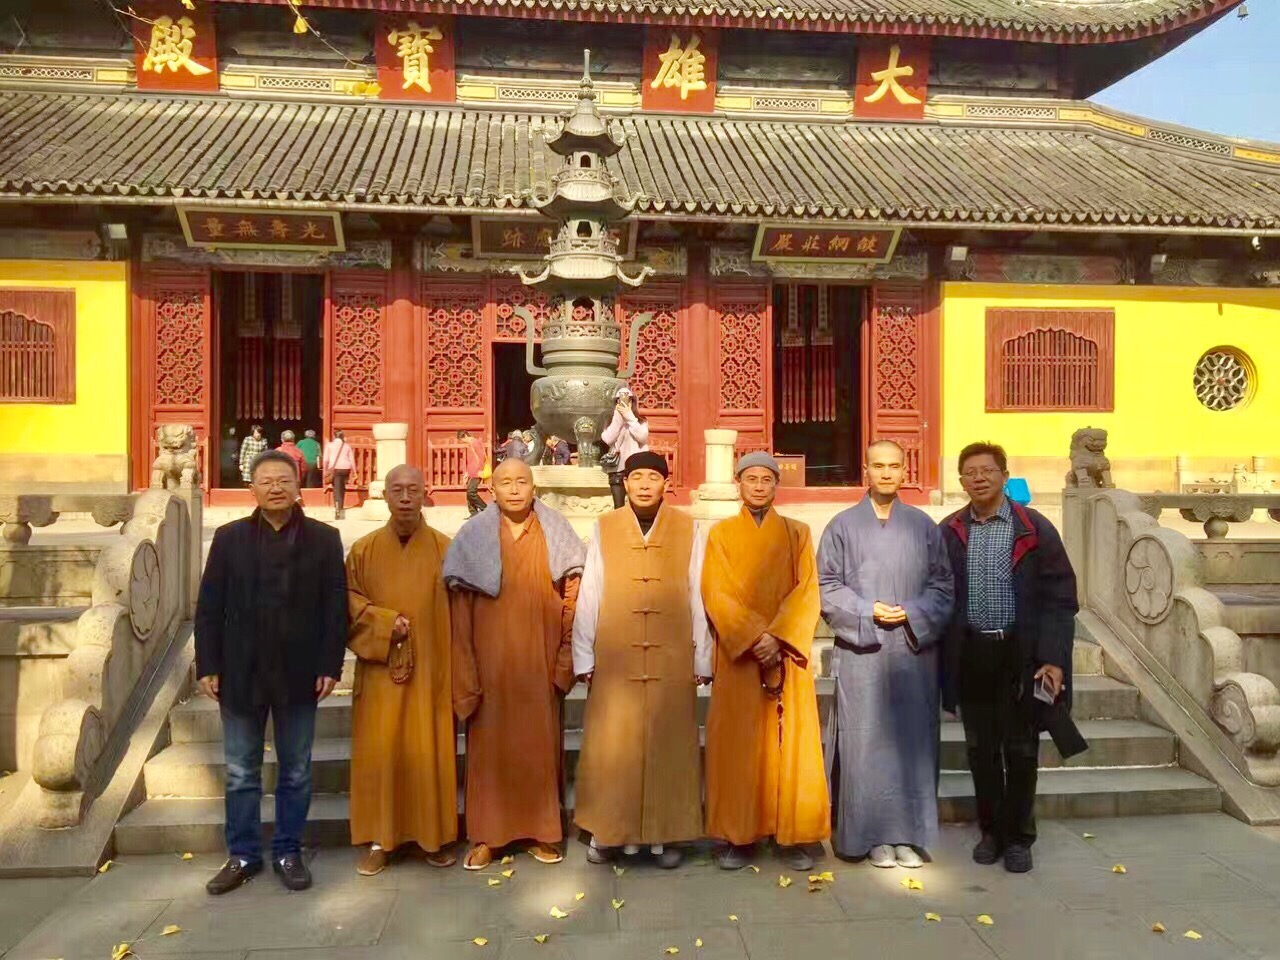 Classmates of Ling Yan Buddhist University met after more than 30 years during Puja.